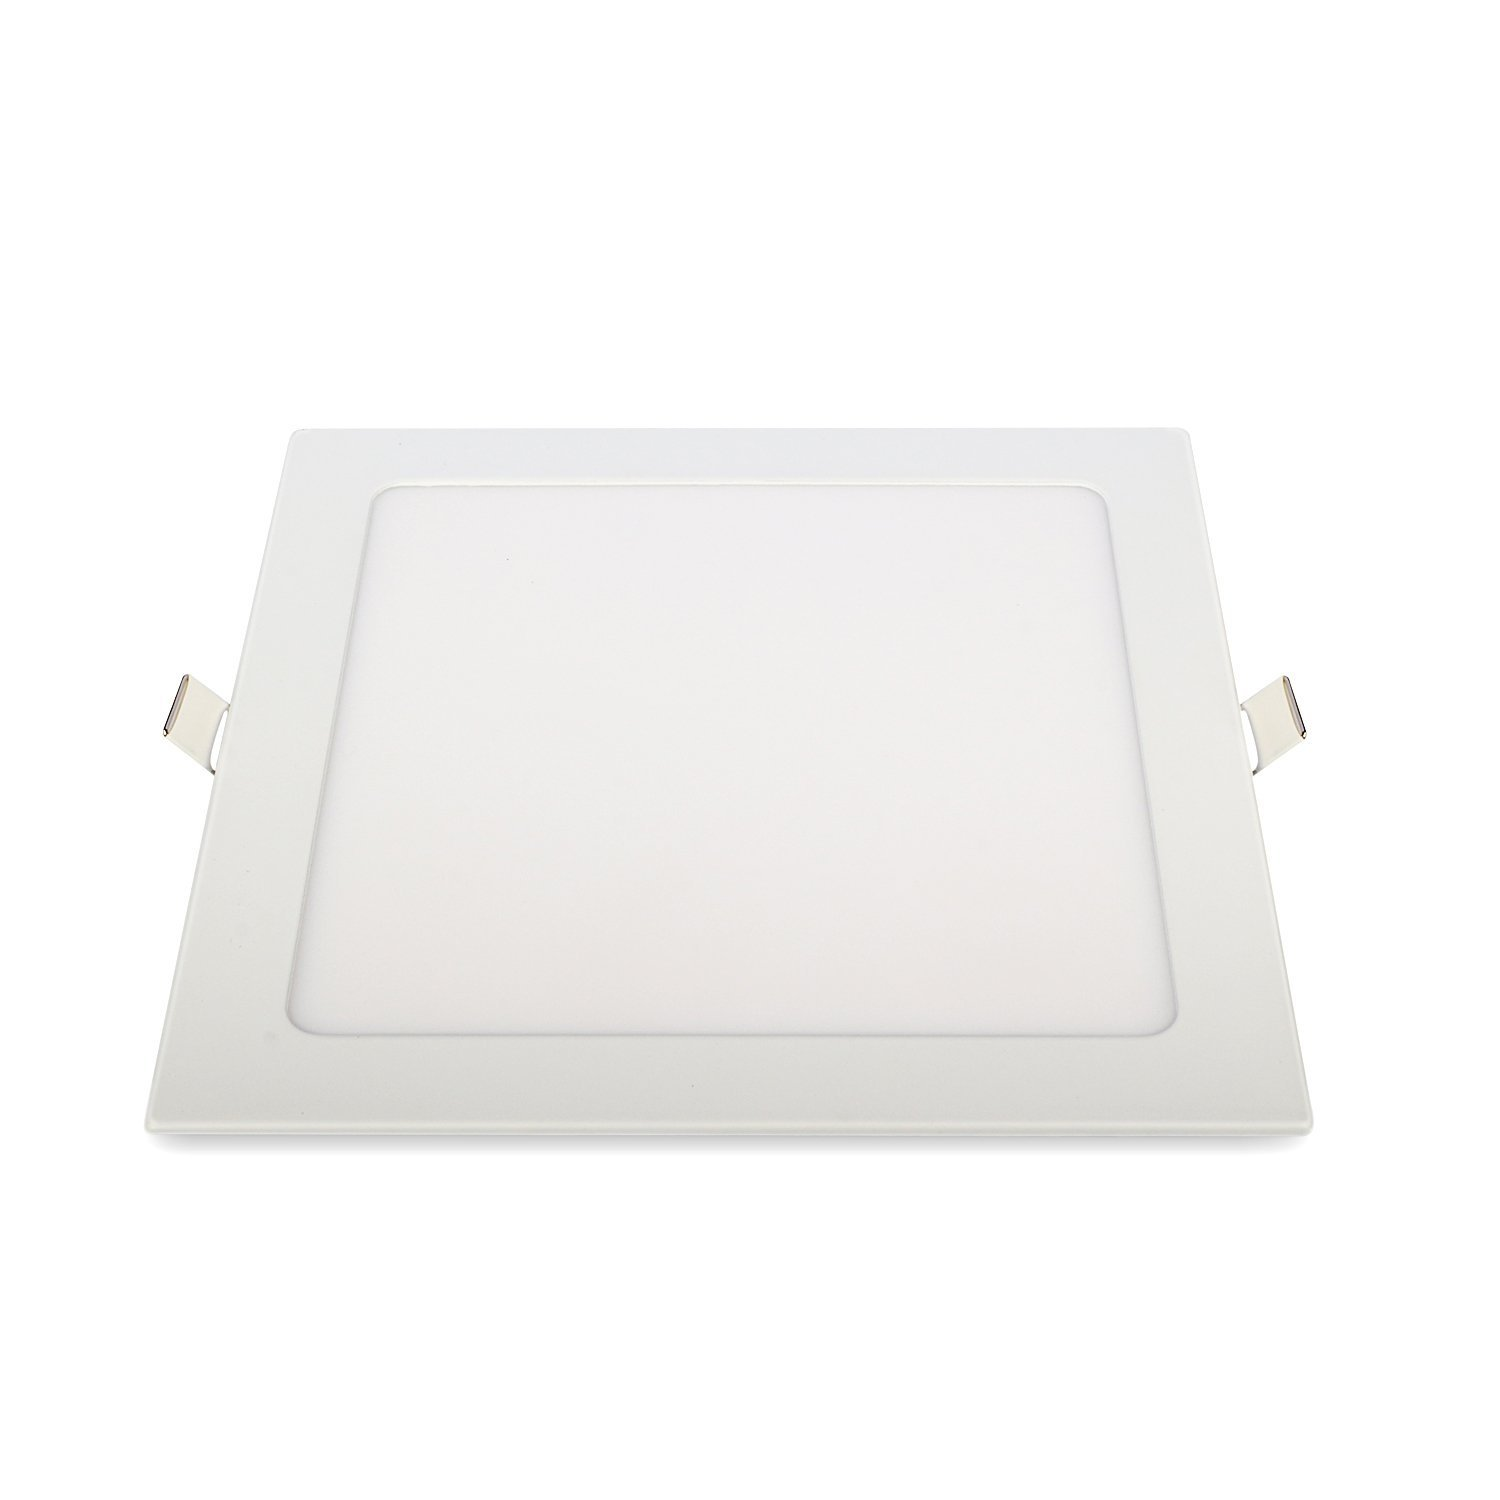 Rekabel 18W LED Square Panel Nature White Bright Light Nature White LED Recessed Ceiling Lights for Home Office Commercial Lighting(2 Pack) (3000) by Rekabel (Image #3)